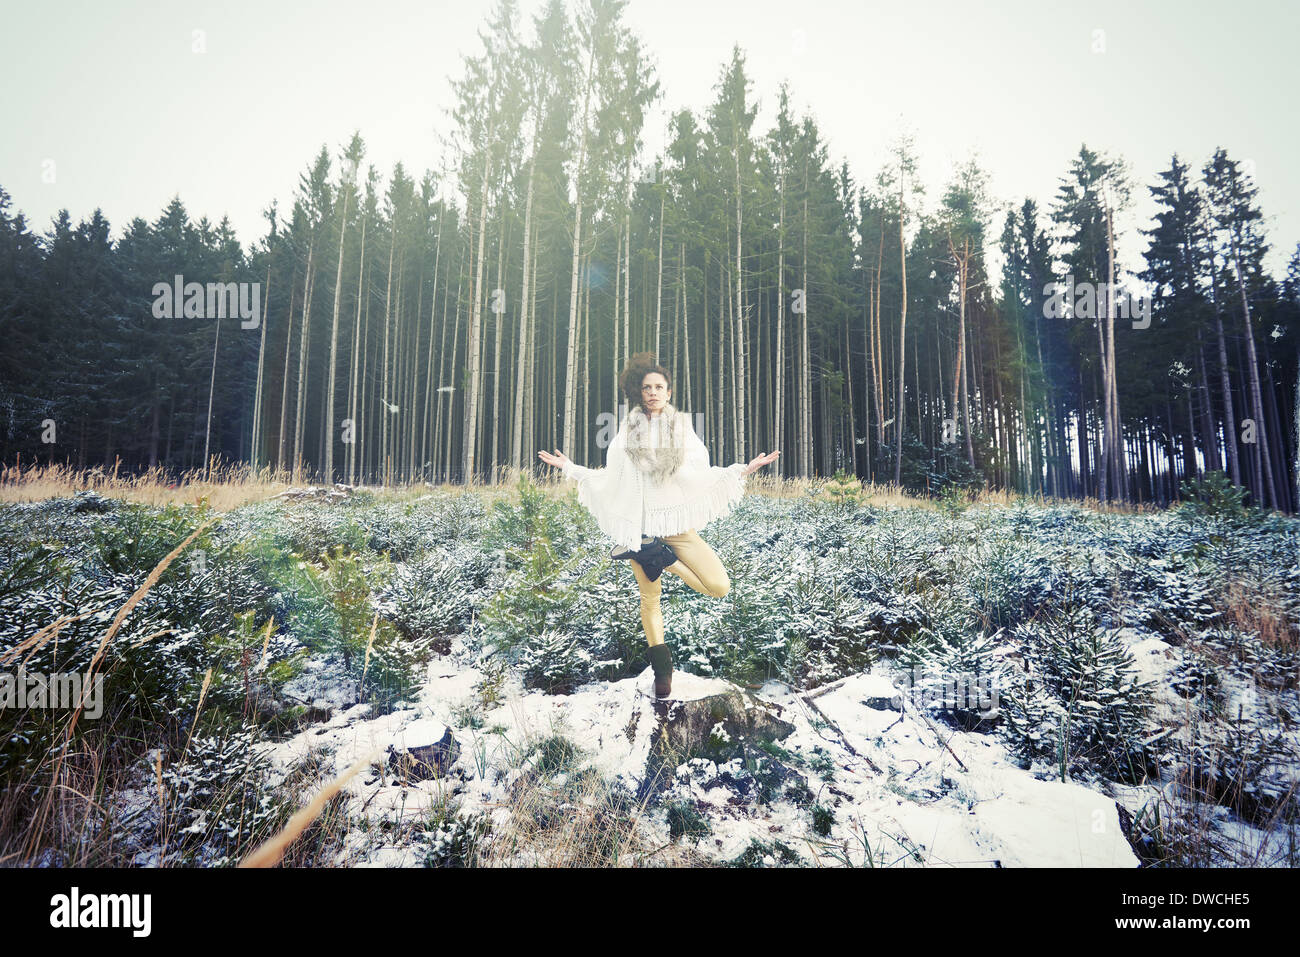 Mid adult woman practicing standing tree yoga pose in forest - Stock Image